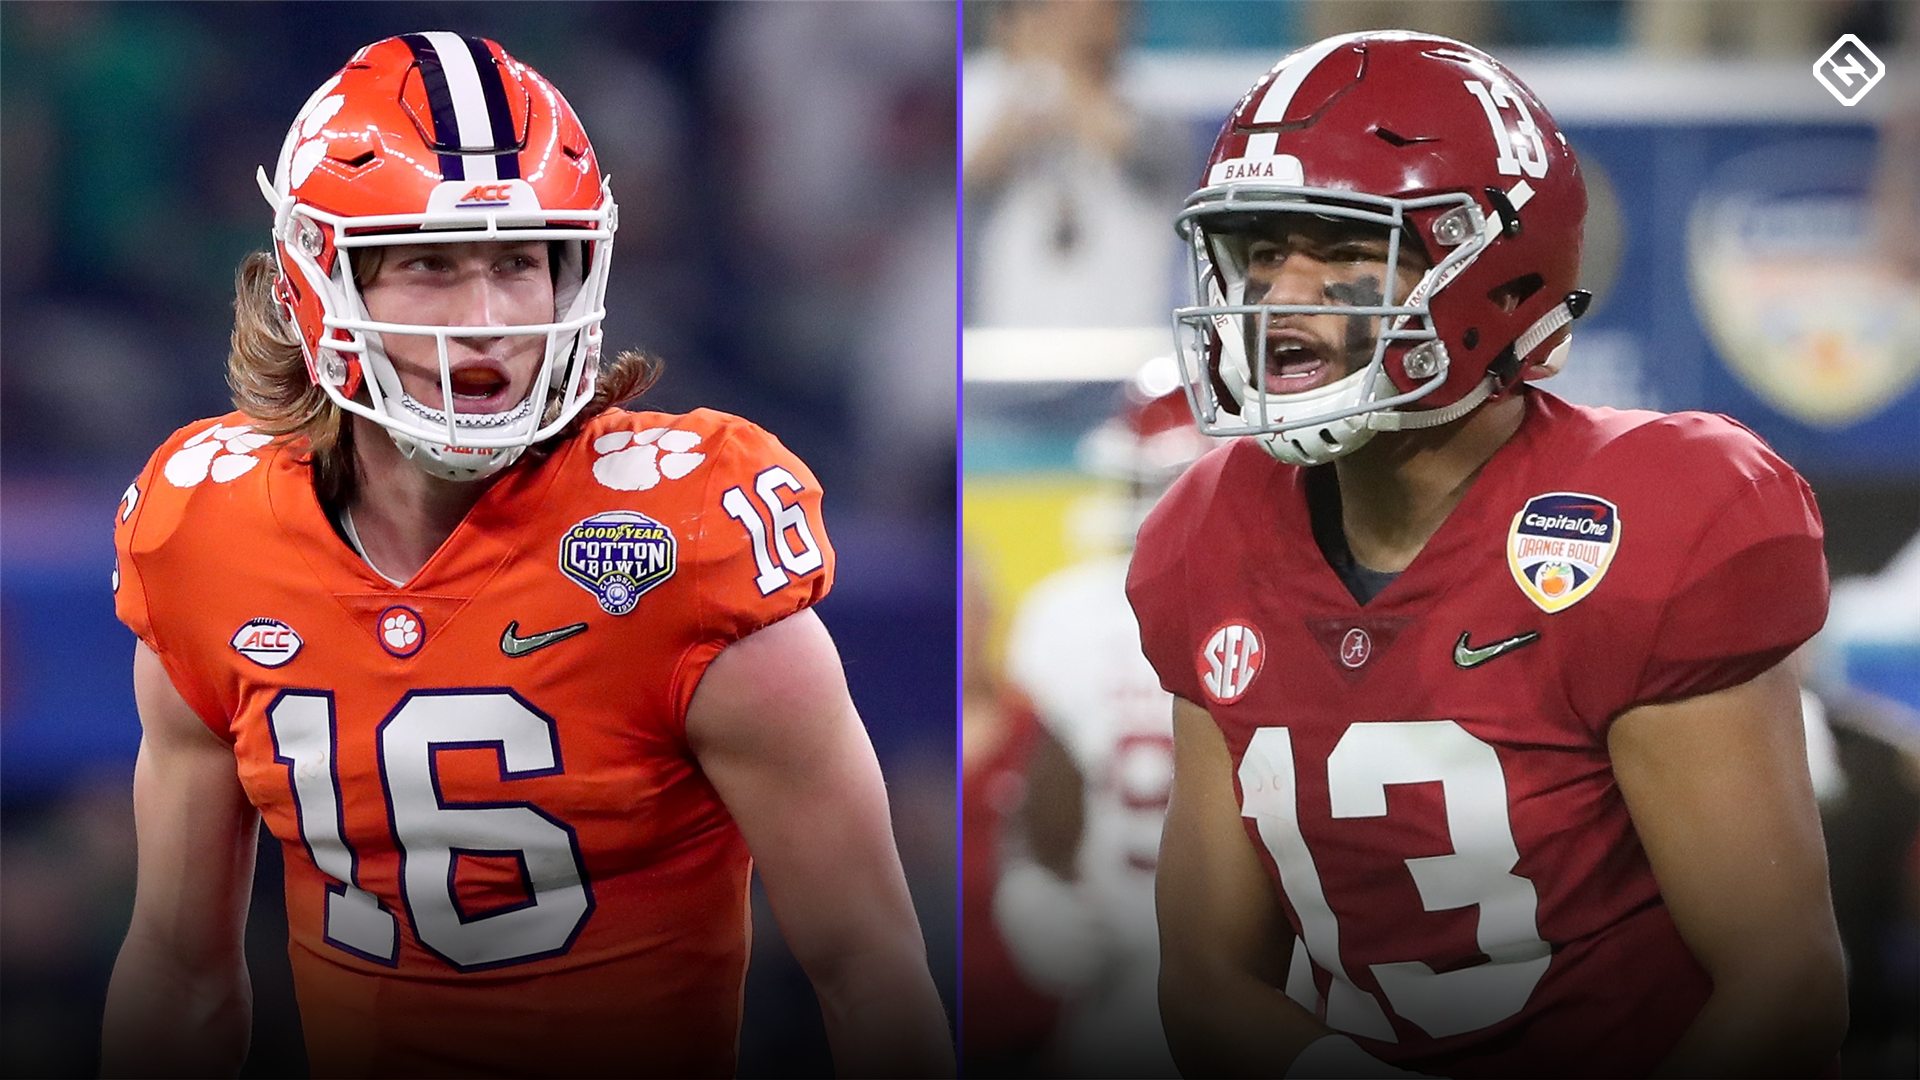 Alabama, Clemson to face off again for title